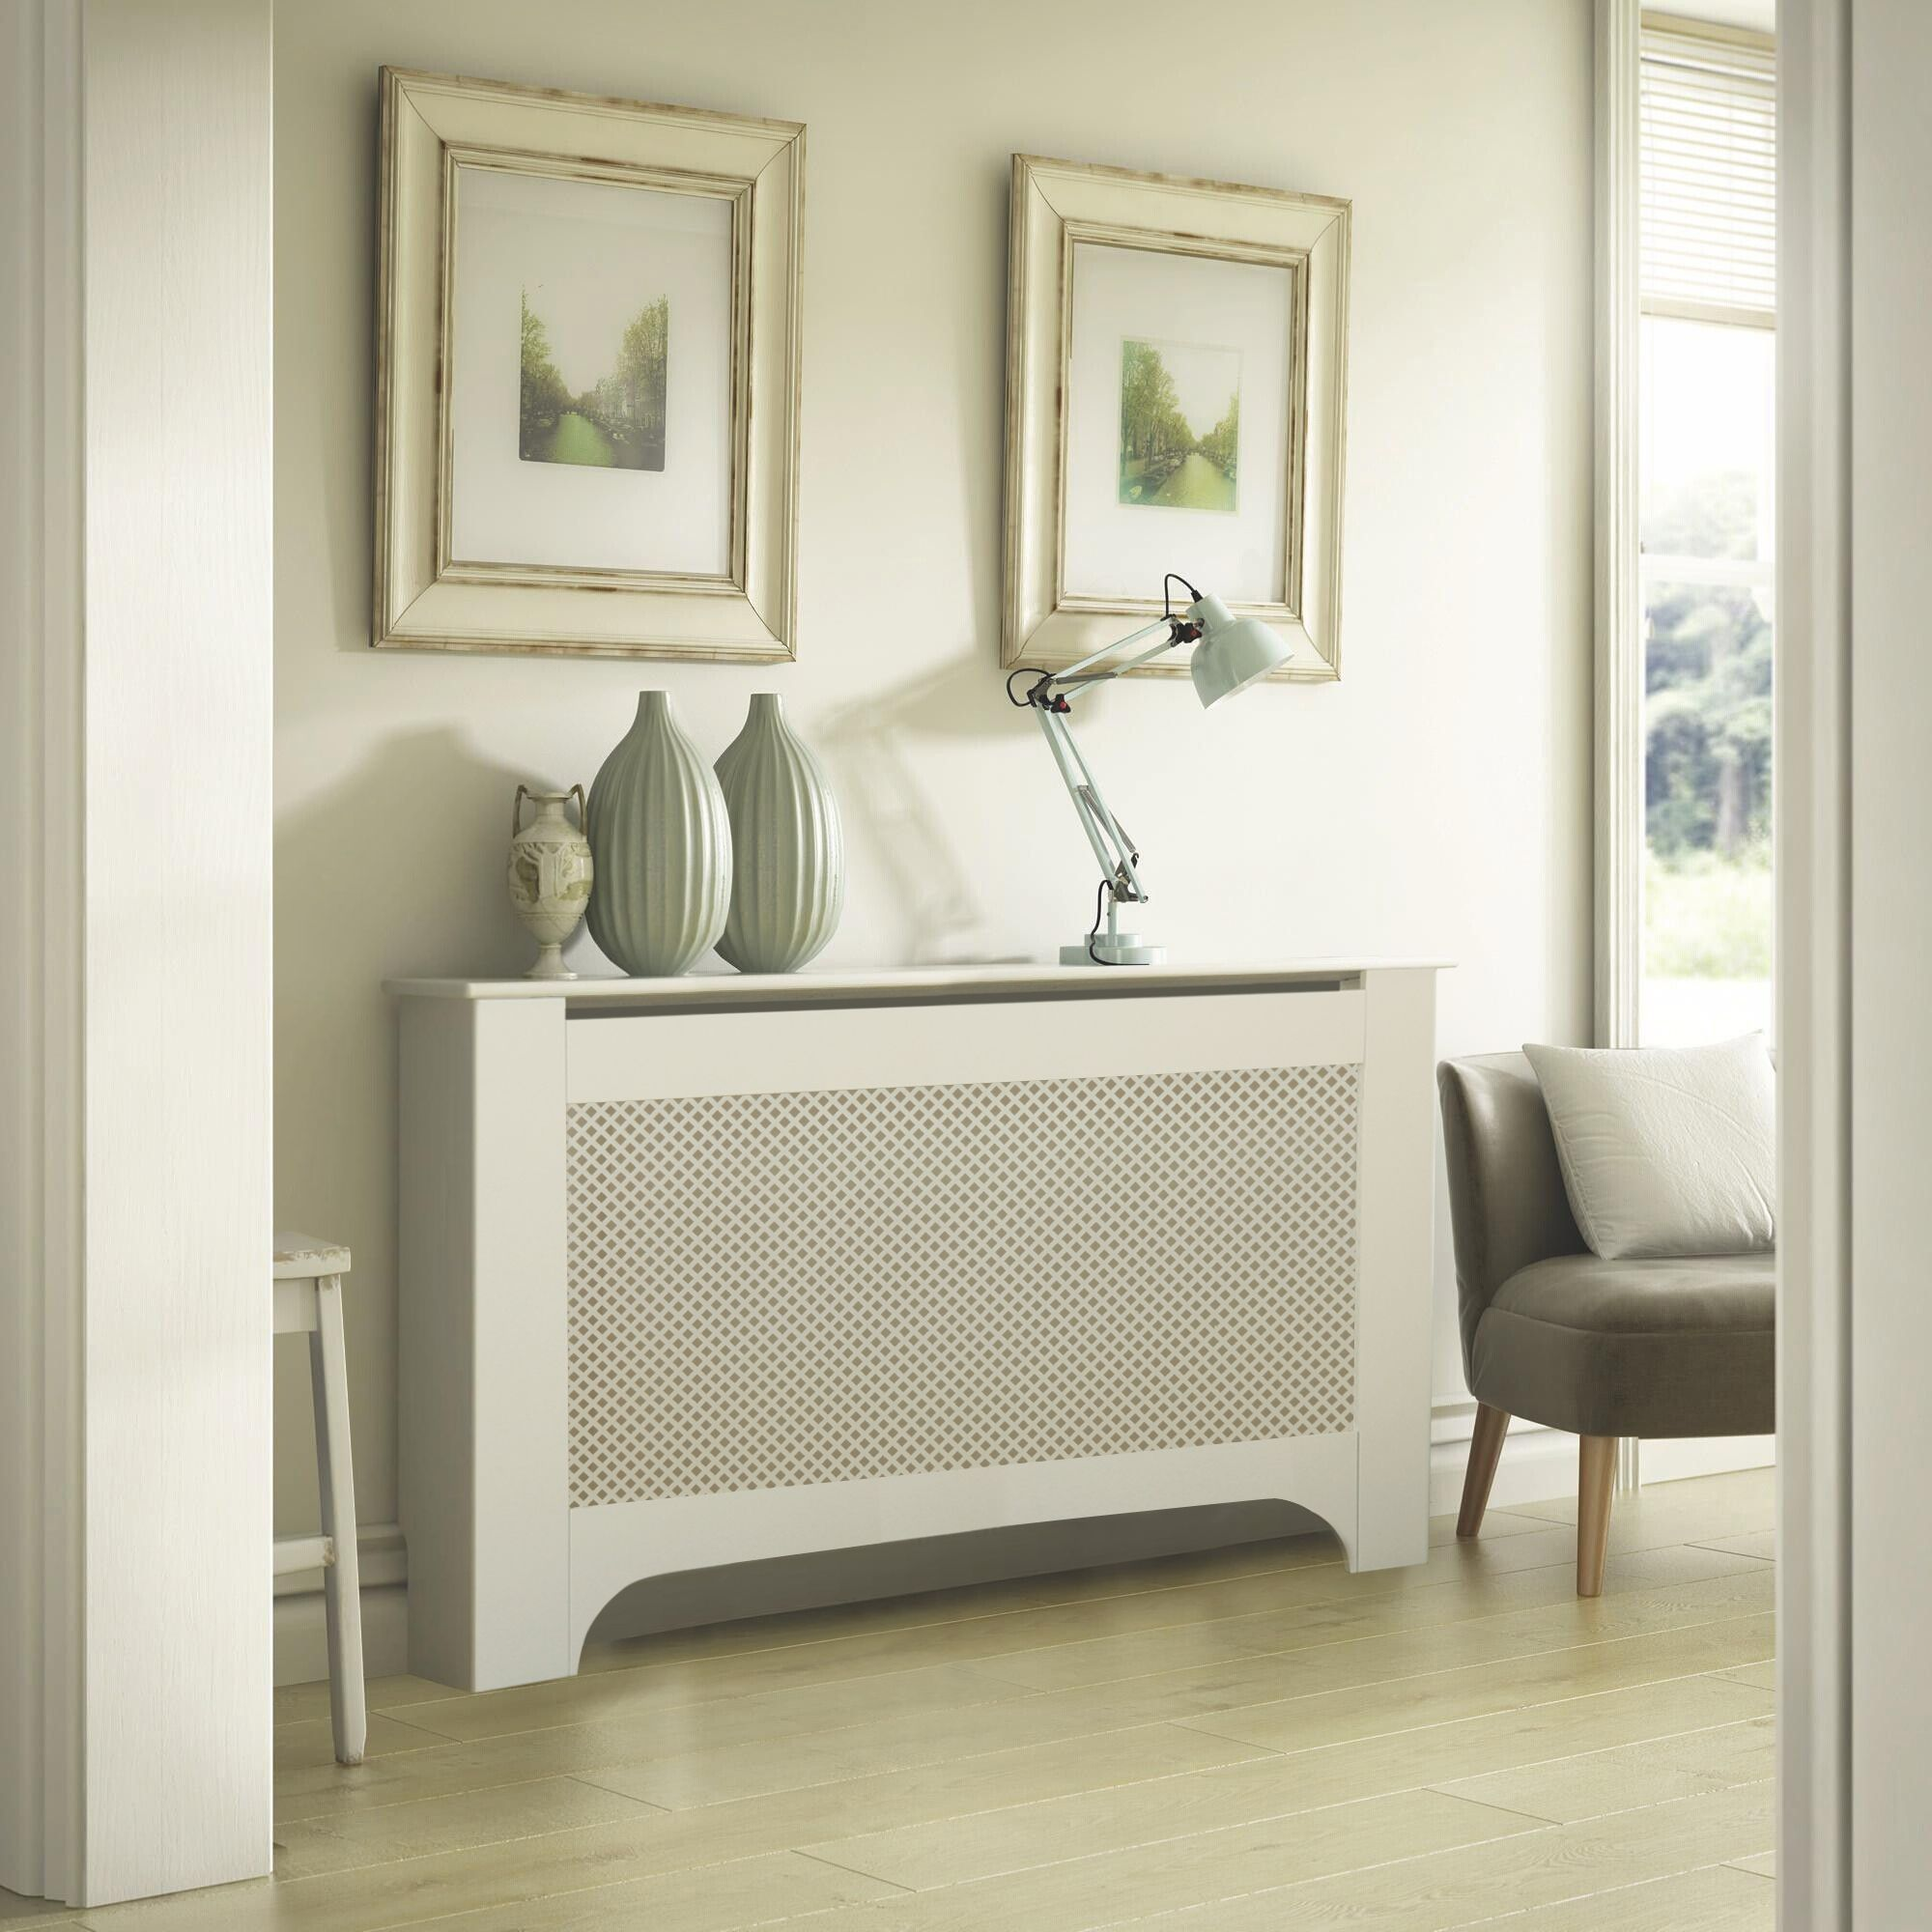 Mayfair Large White Painted Radiator Cover Departments Diy At